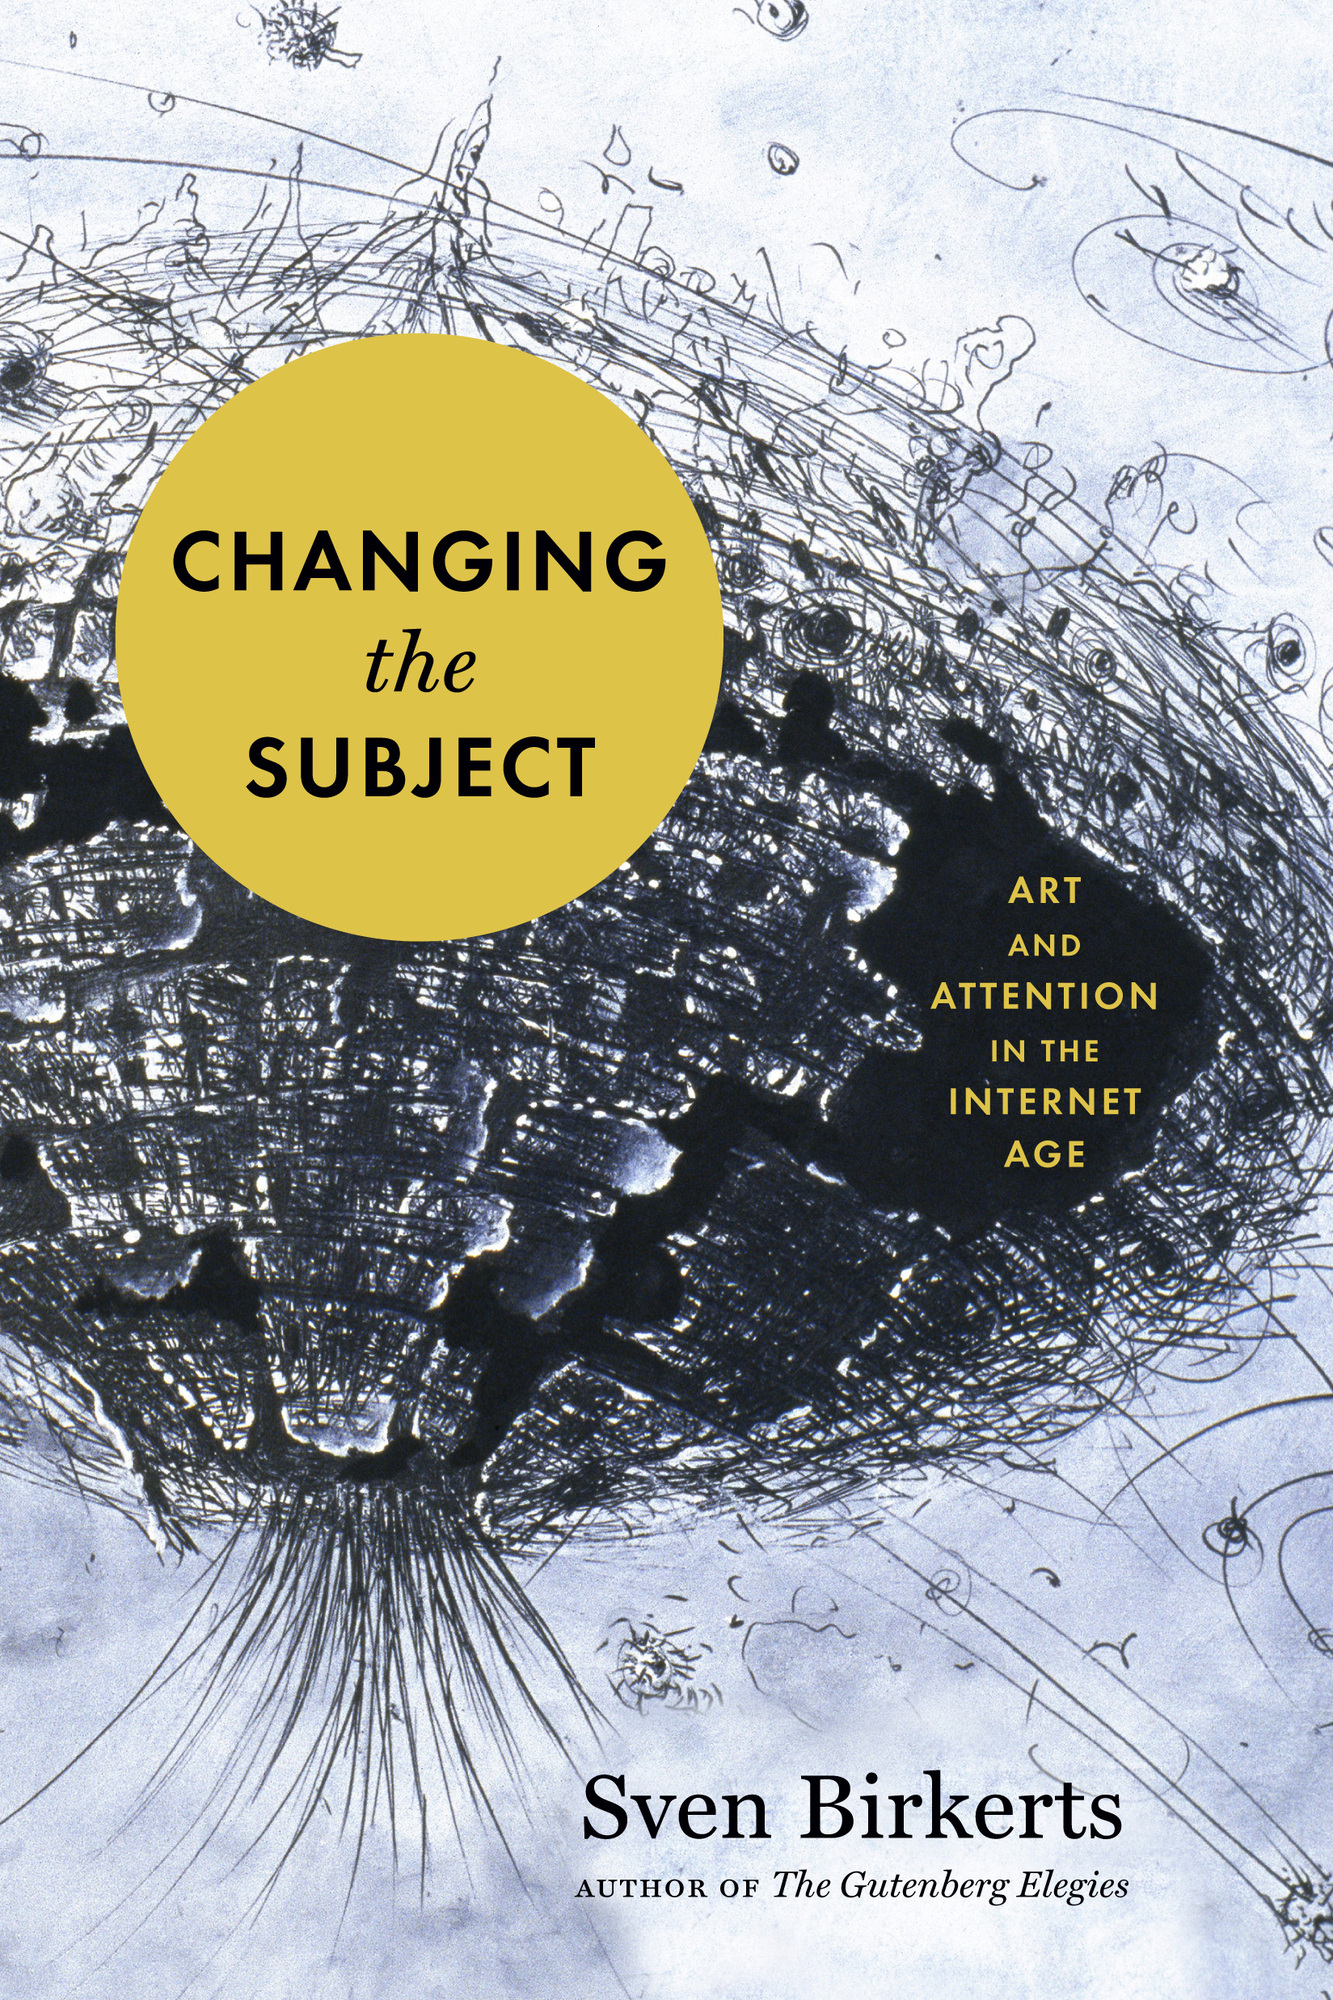 Sven Birkerts, Changing the Subject